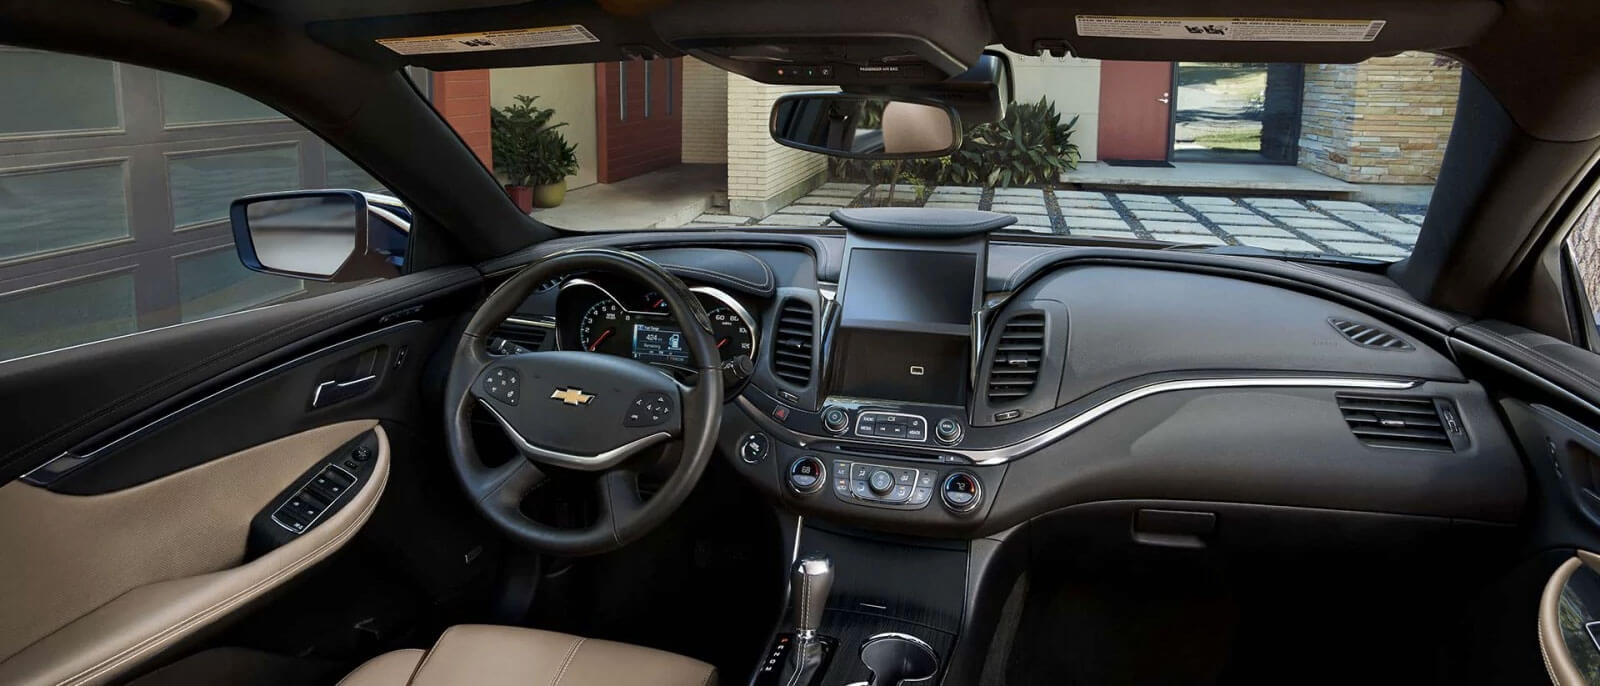 Astounding Learn All About The 2017 Chevy Impala Inside And Out Gmtry Best Dining Table And Chair Ideas Images Gmtryco